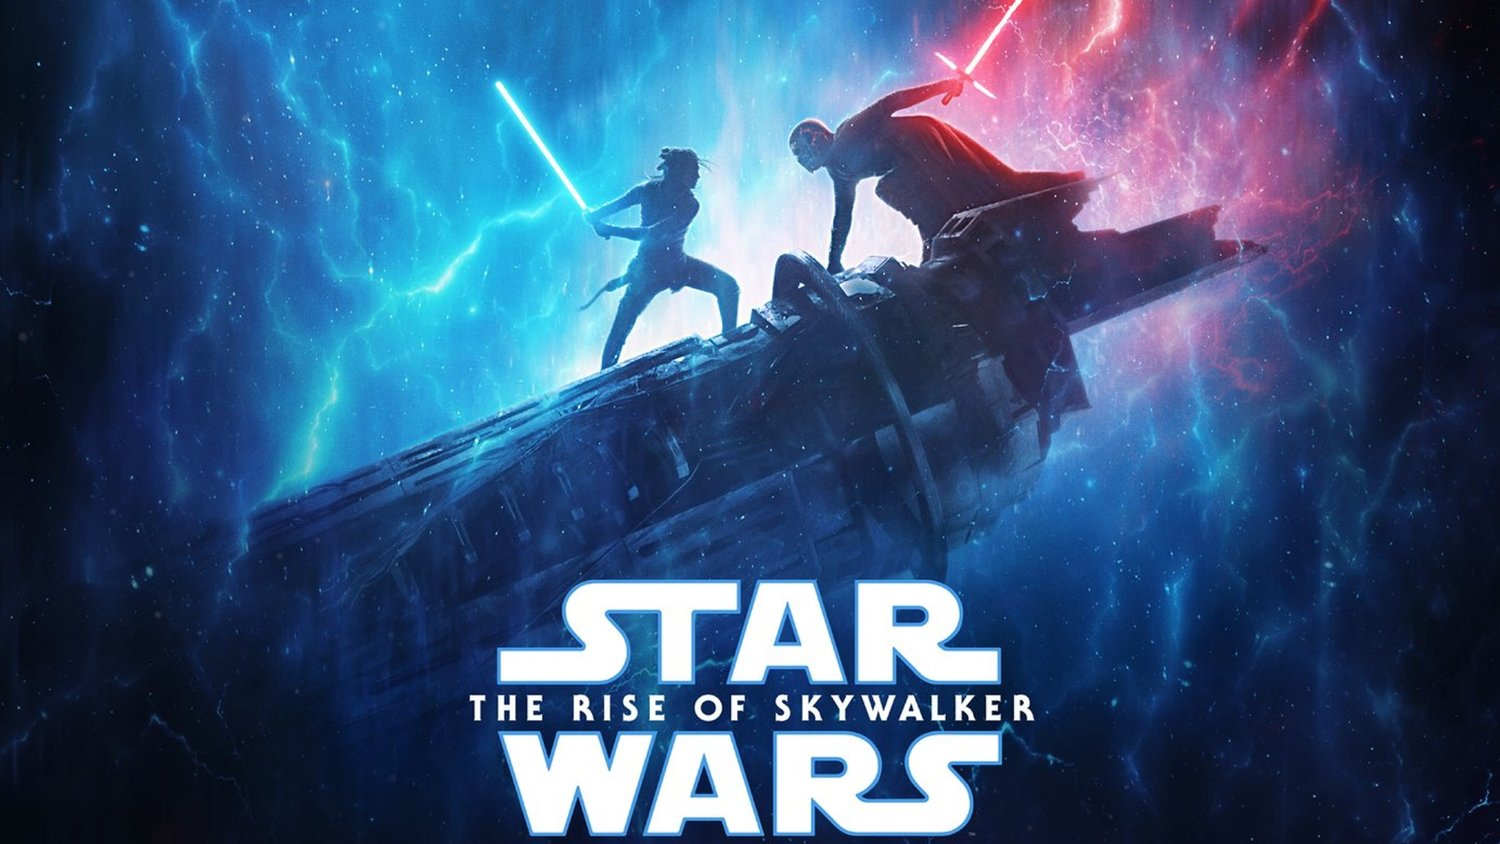 Star Wars: The Rise of Skywalker Movie Poster in Digimind Blog